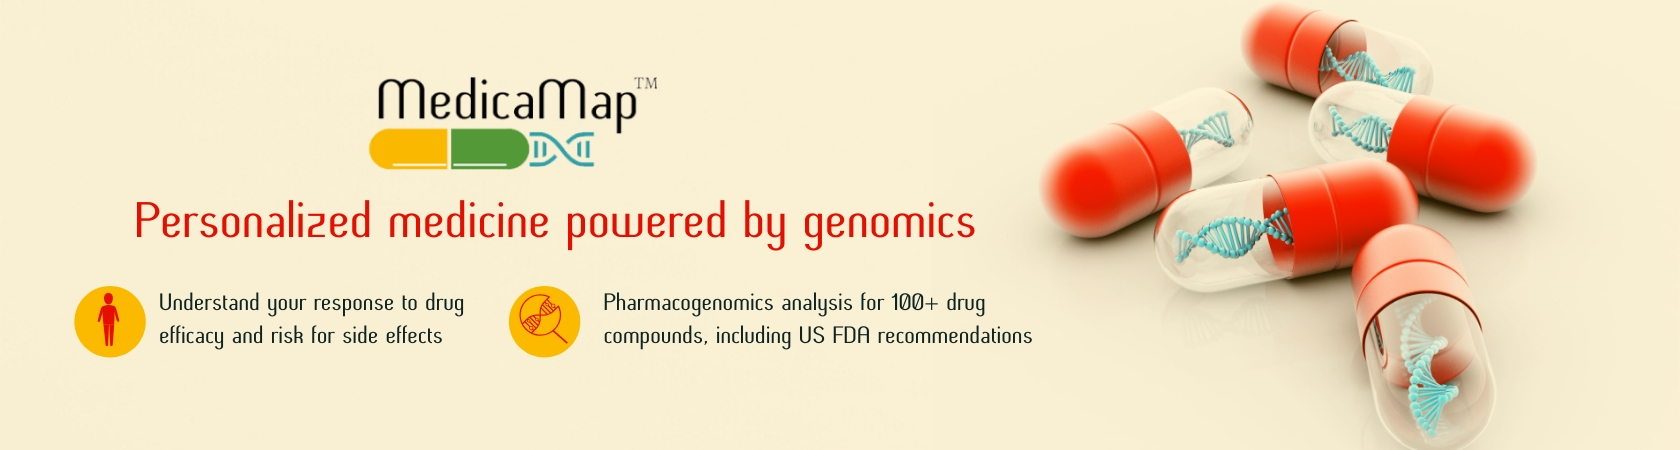 Medicamap- Genetic Testing for Drug Response